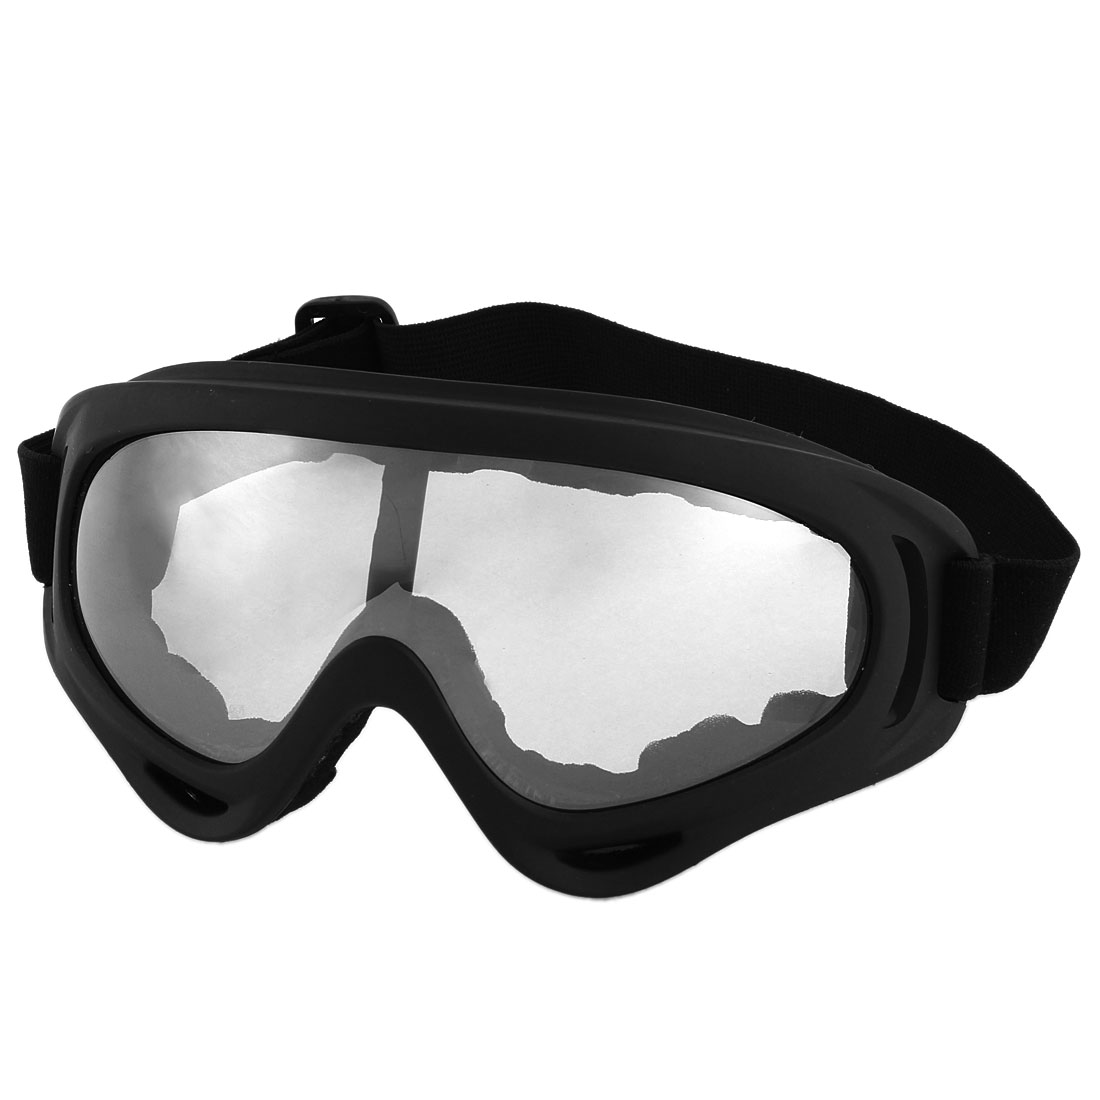 Unisex Black Full Frame Elastic Nylon Motorcycle Glasses Sunglasses